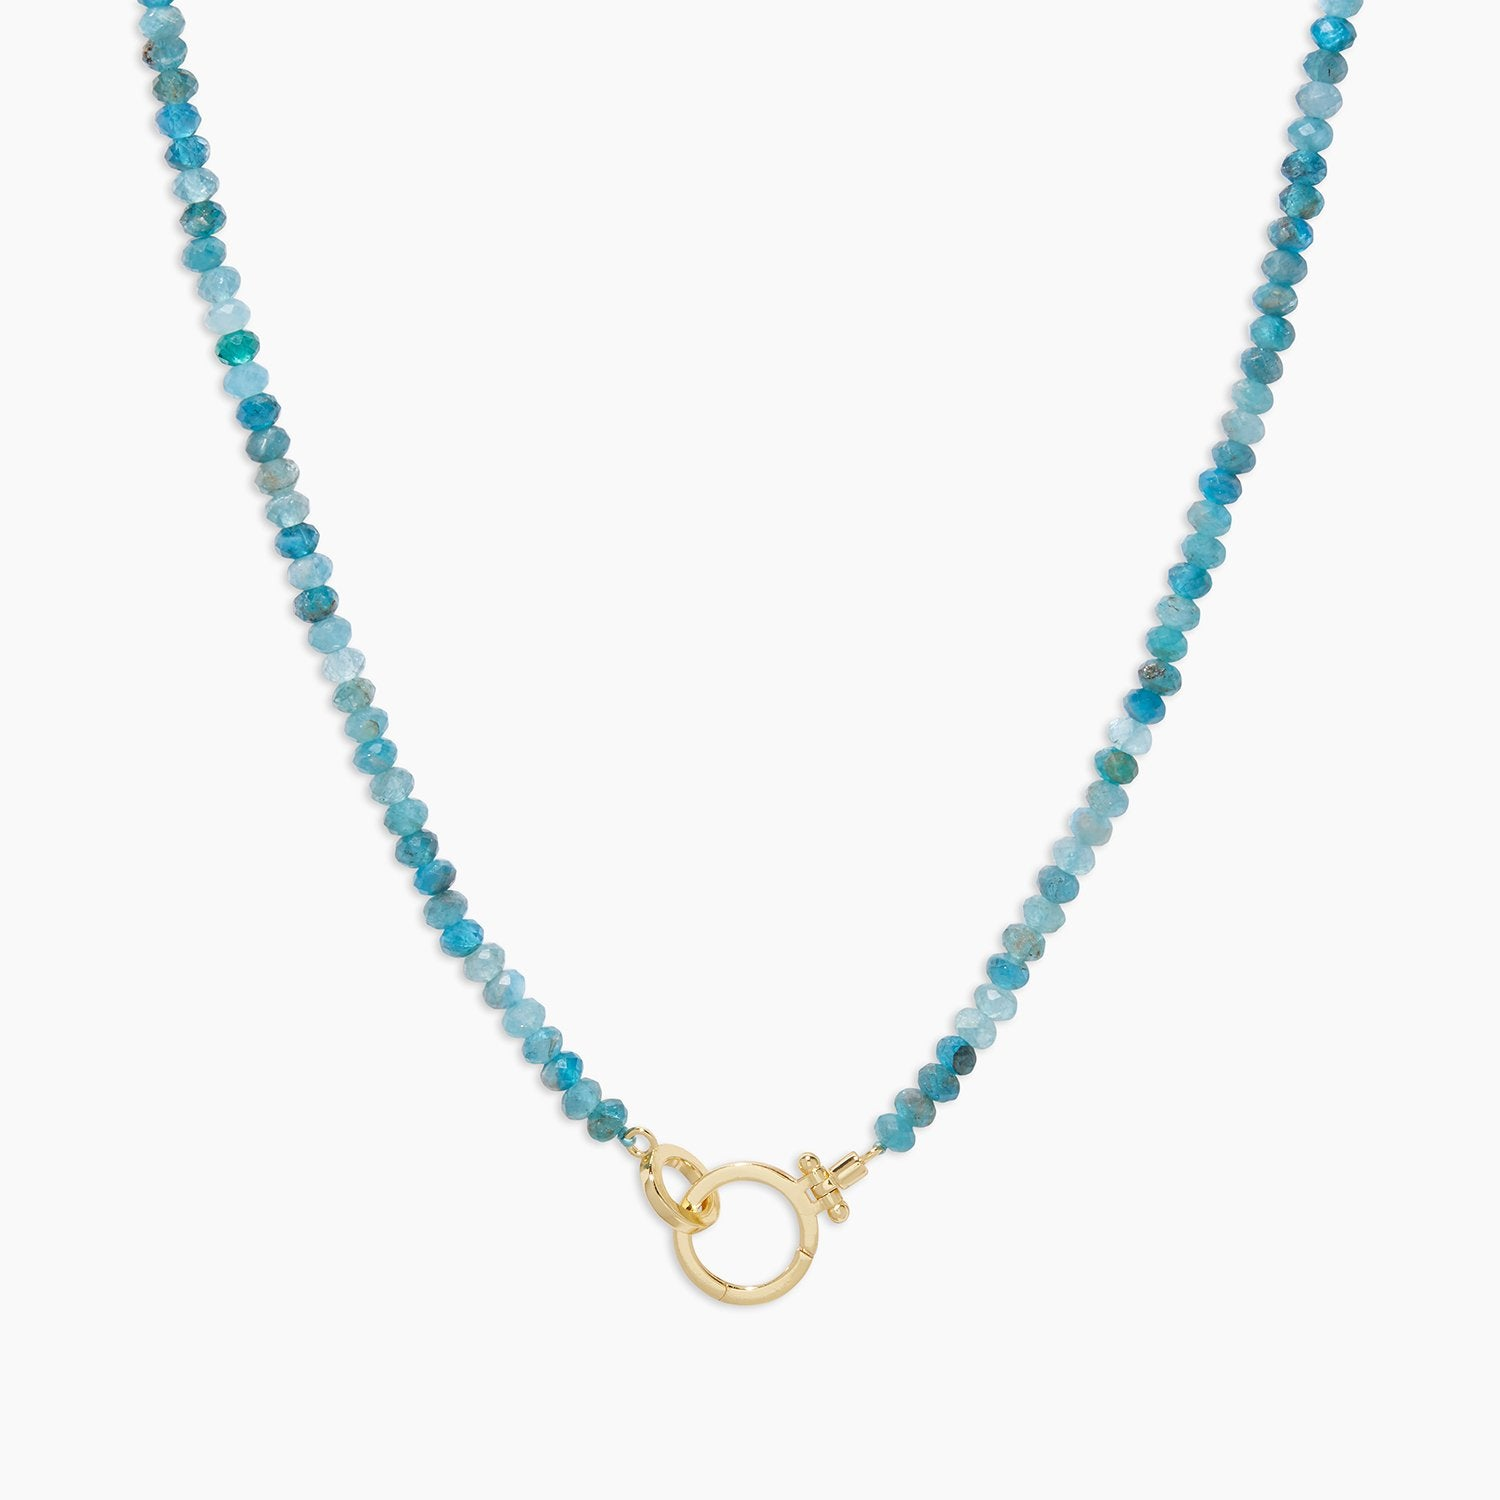 Parker gem necklace - apatite